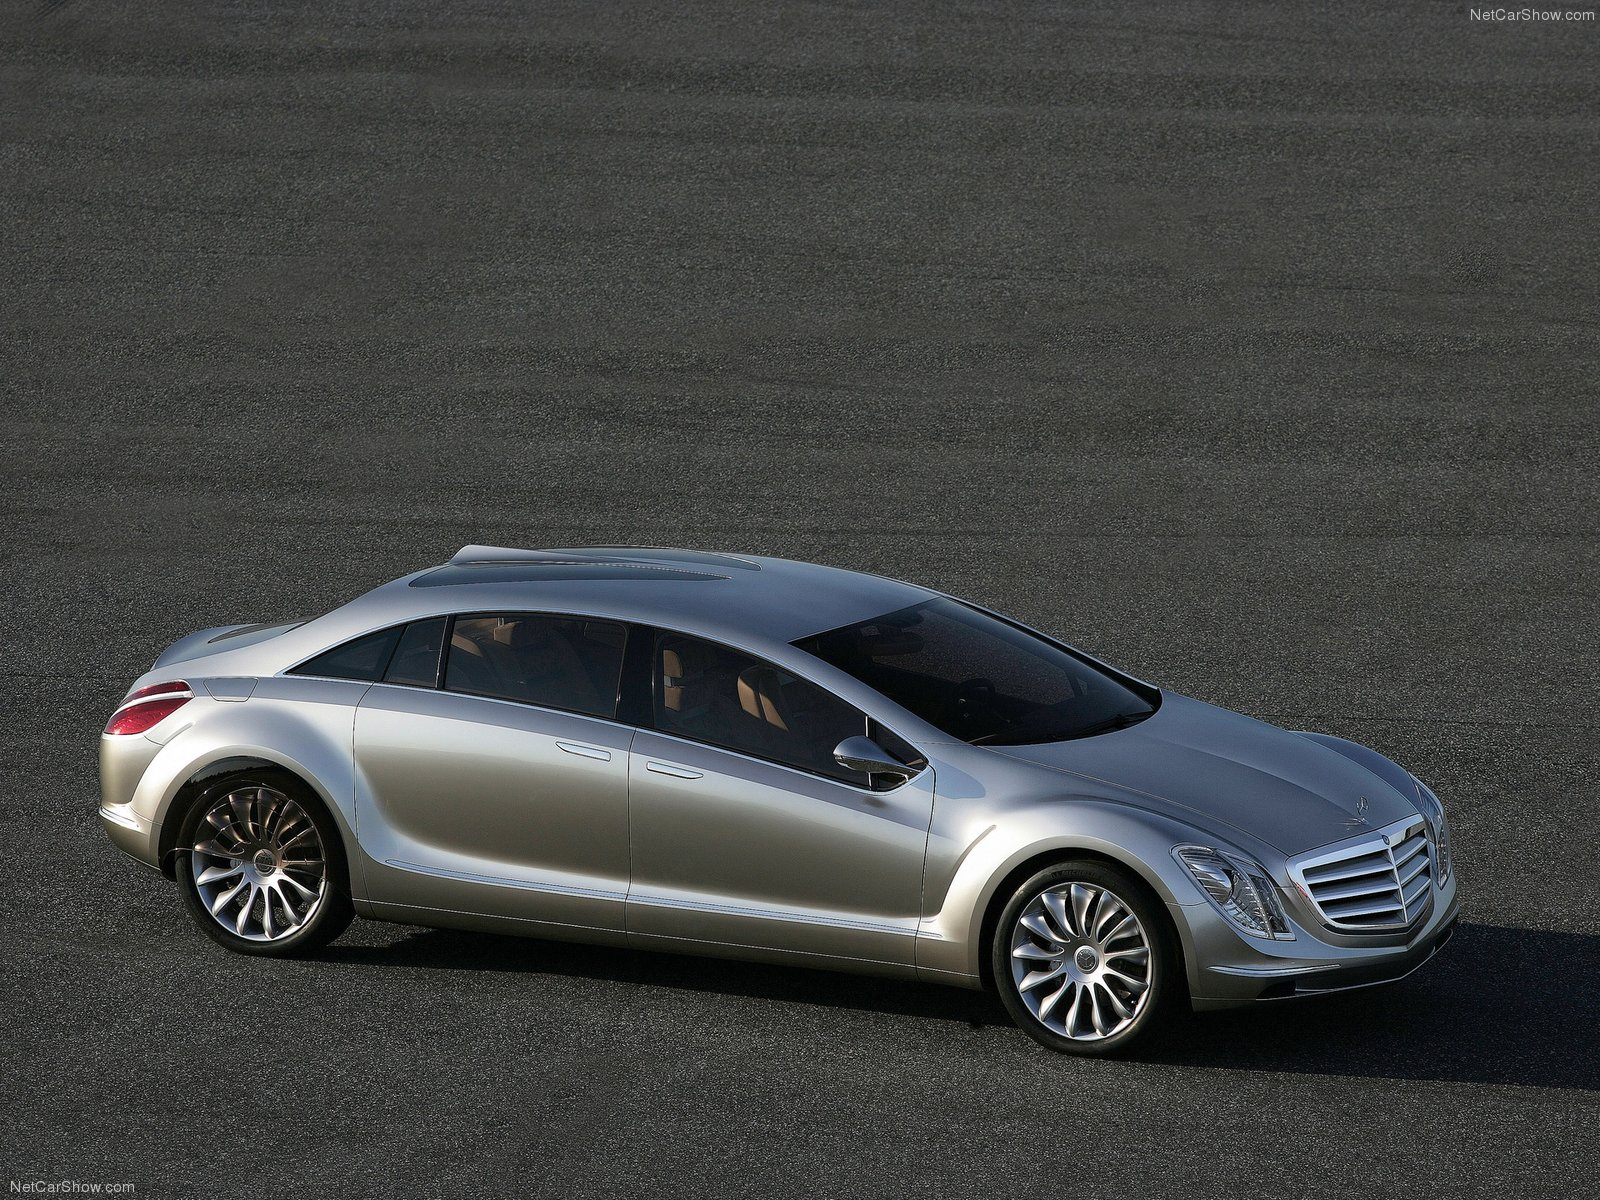 Mercedes-Benz-F700_Concept_2007_1600x1200_wallpaper_08